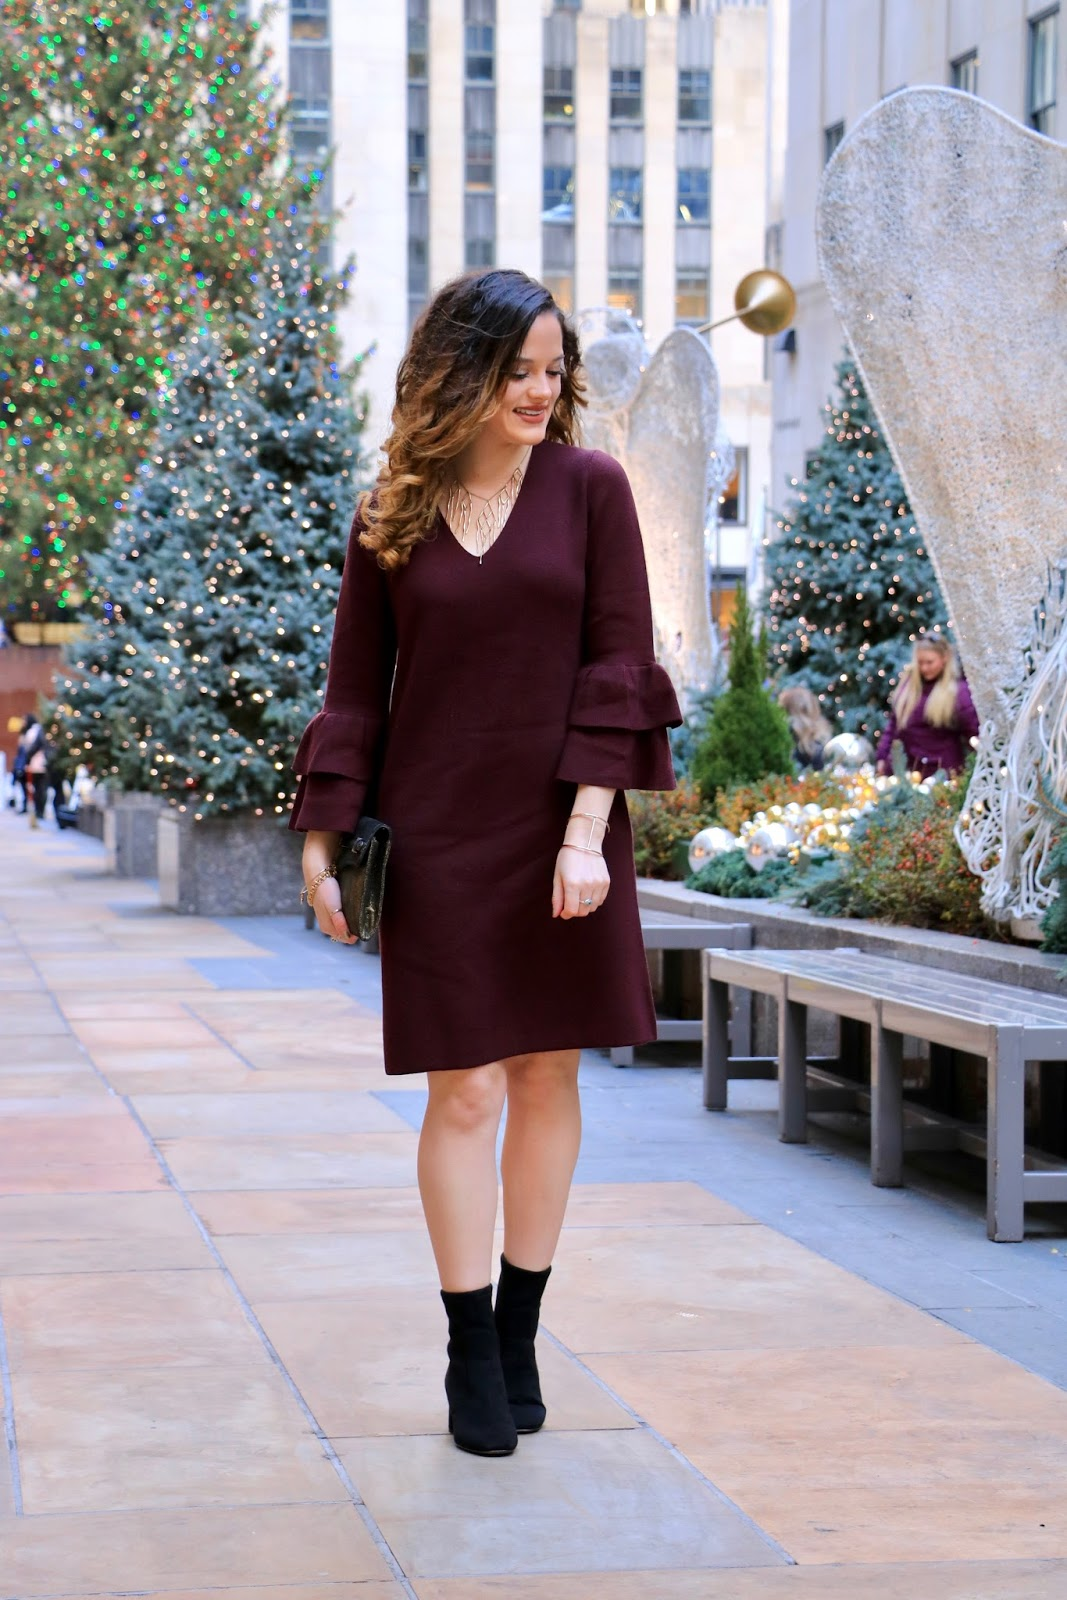 Nyc fashion blogger Kathleen Harper wearing a 2017 holiday dress by Ann Taylor